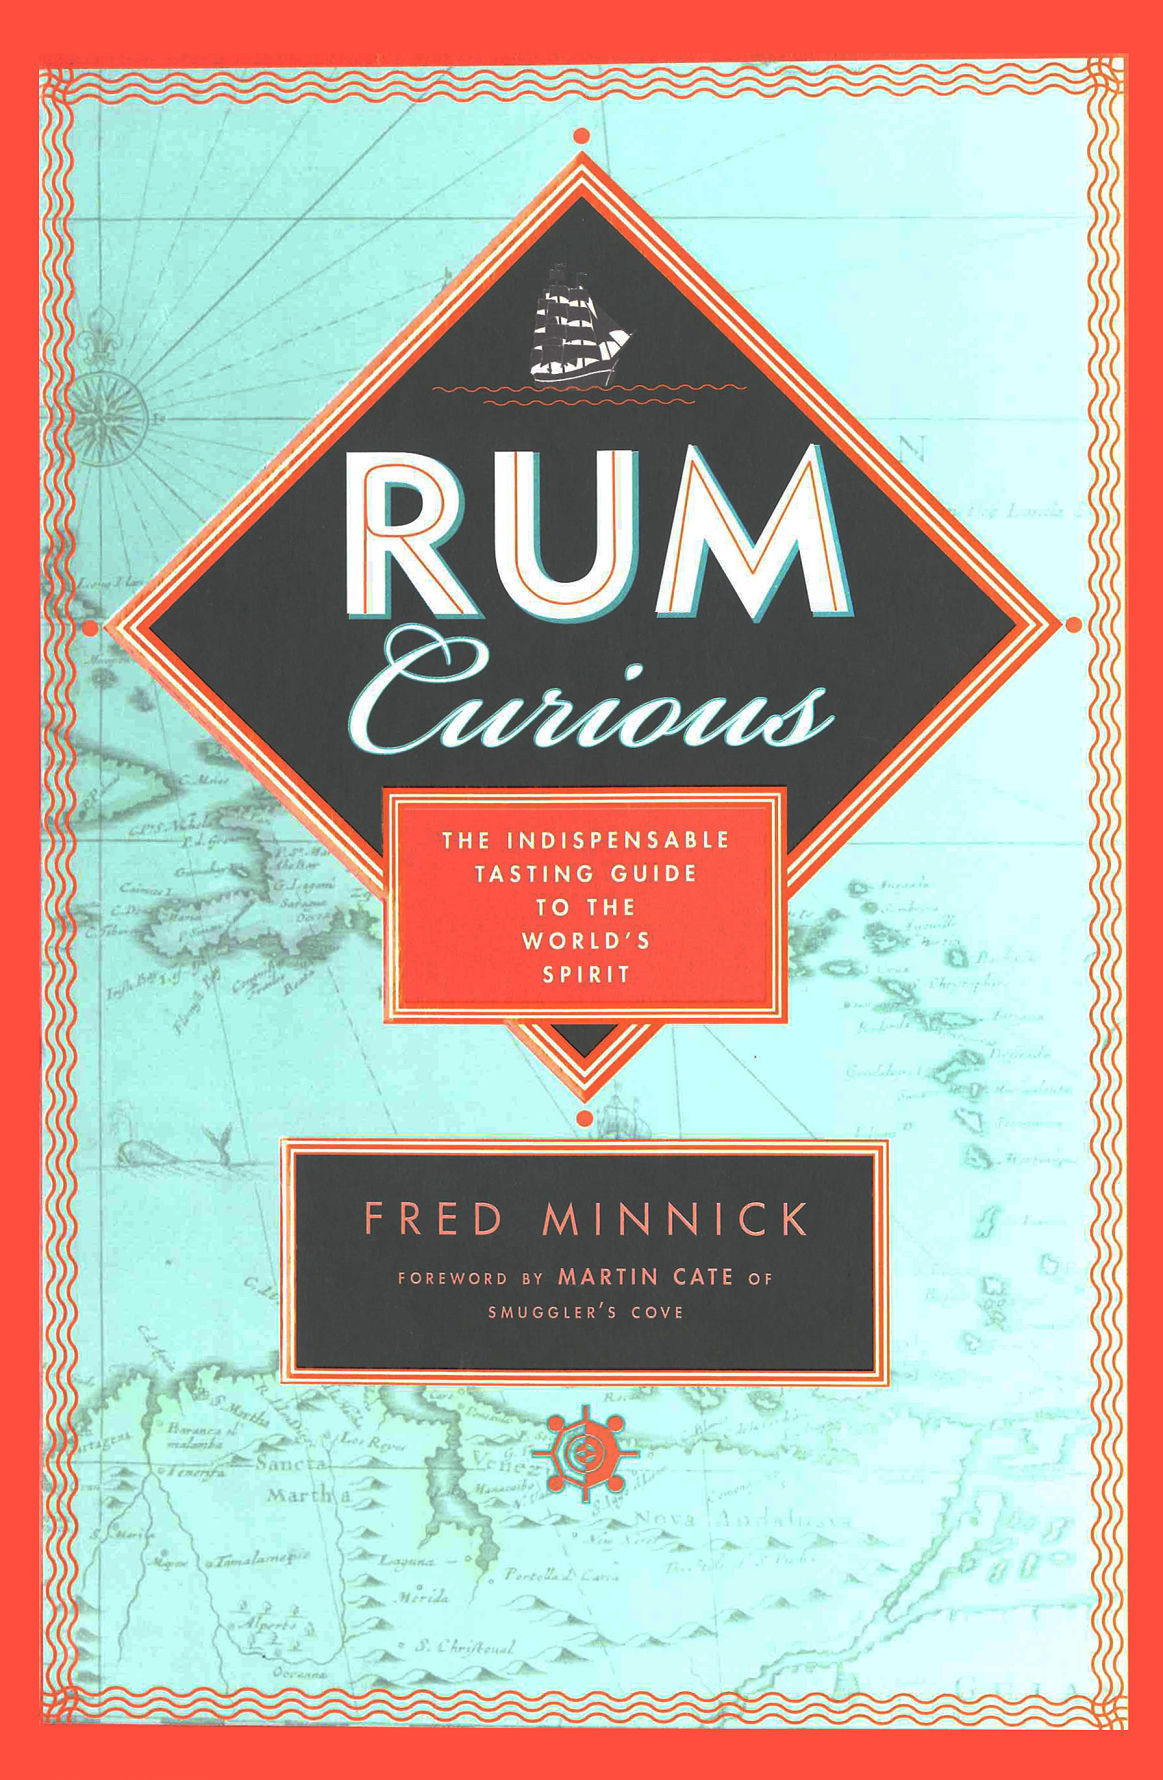 Rum Currious.jpg